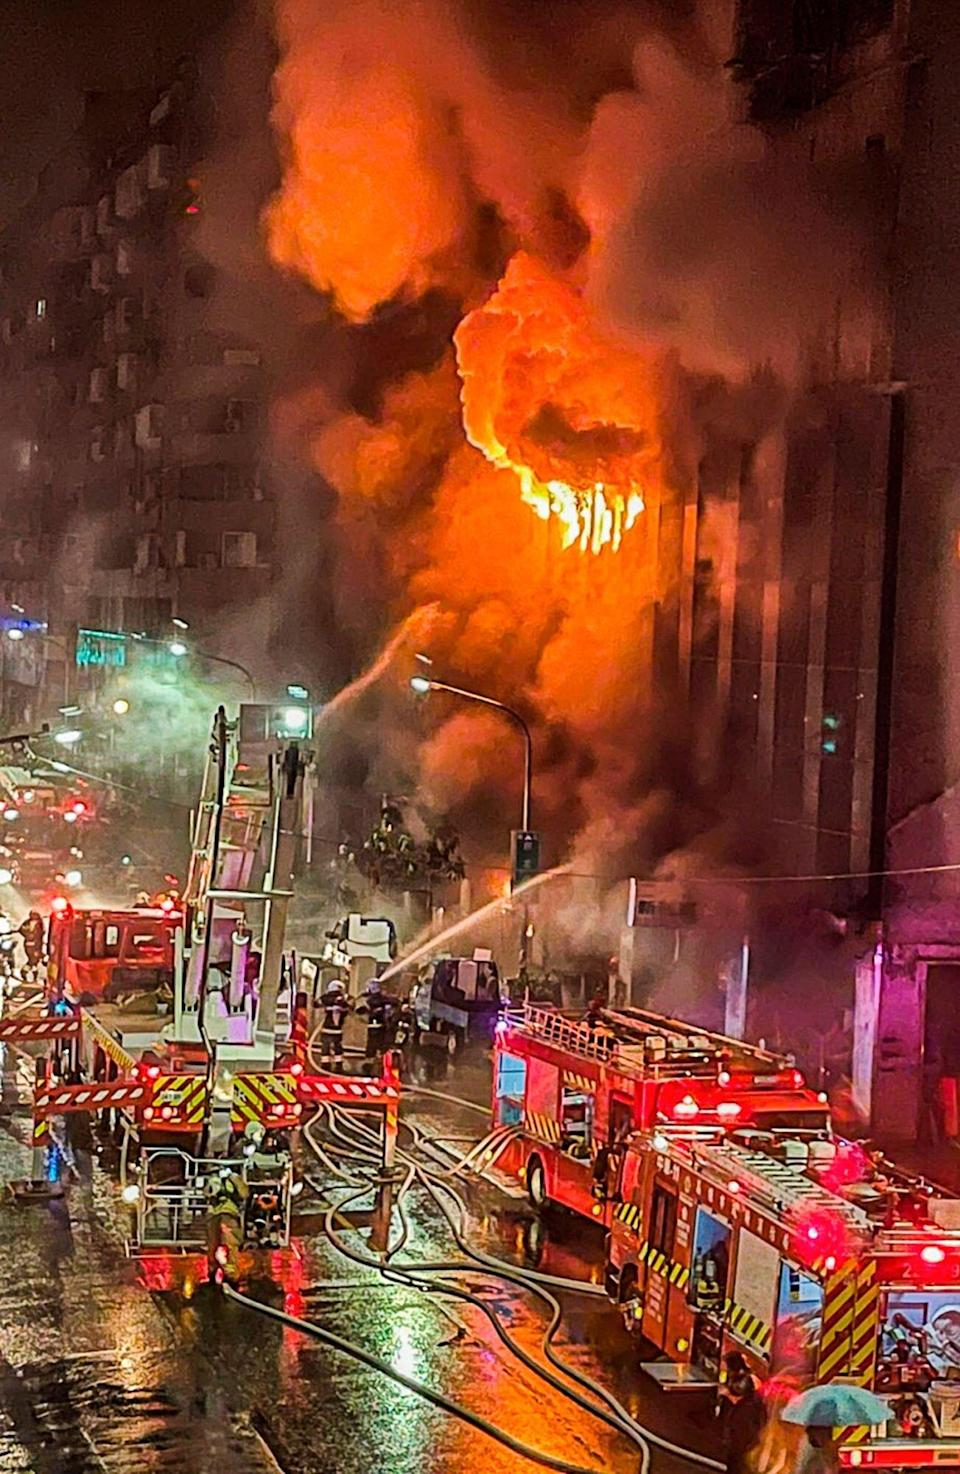 Firefighters battle a building fire in Kaohsiung